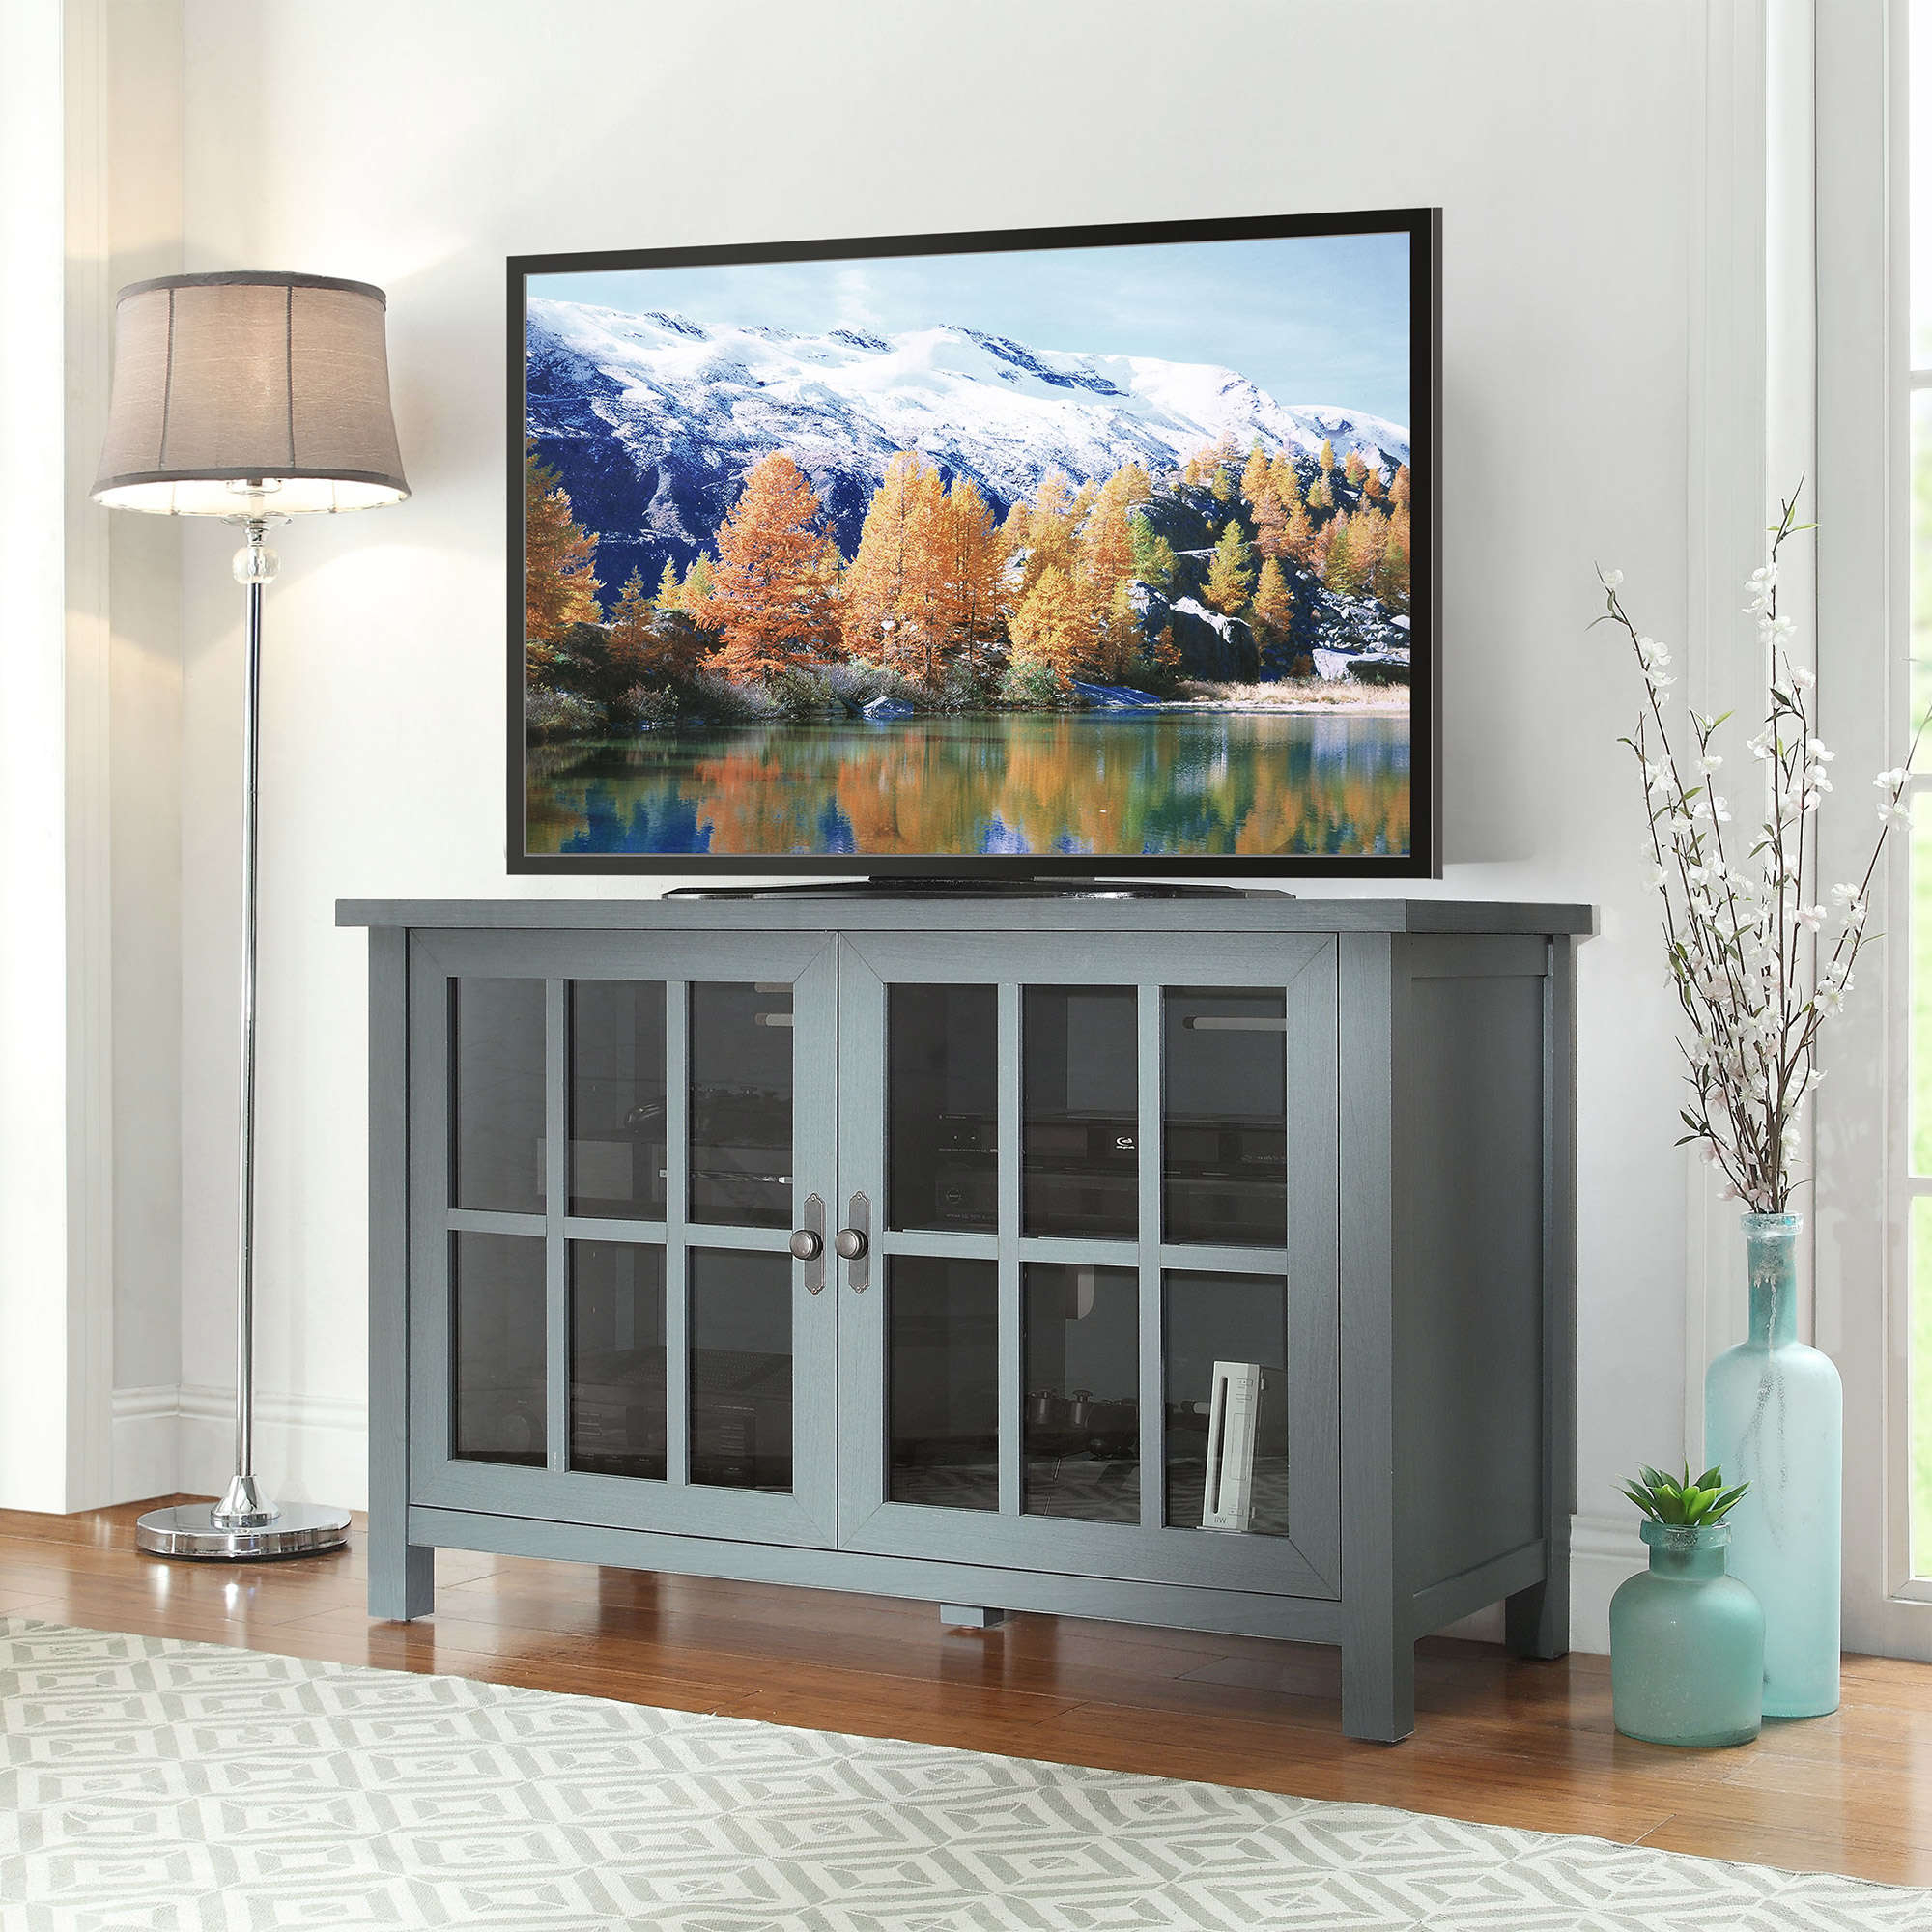 Well Liked Better Homes And Gardens Oxford Square Tv Console For Tvs Up To 55 Pertaining To Oxford 70 Inch Tv Stands (Gallery 9 of 20)